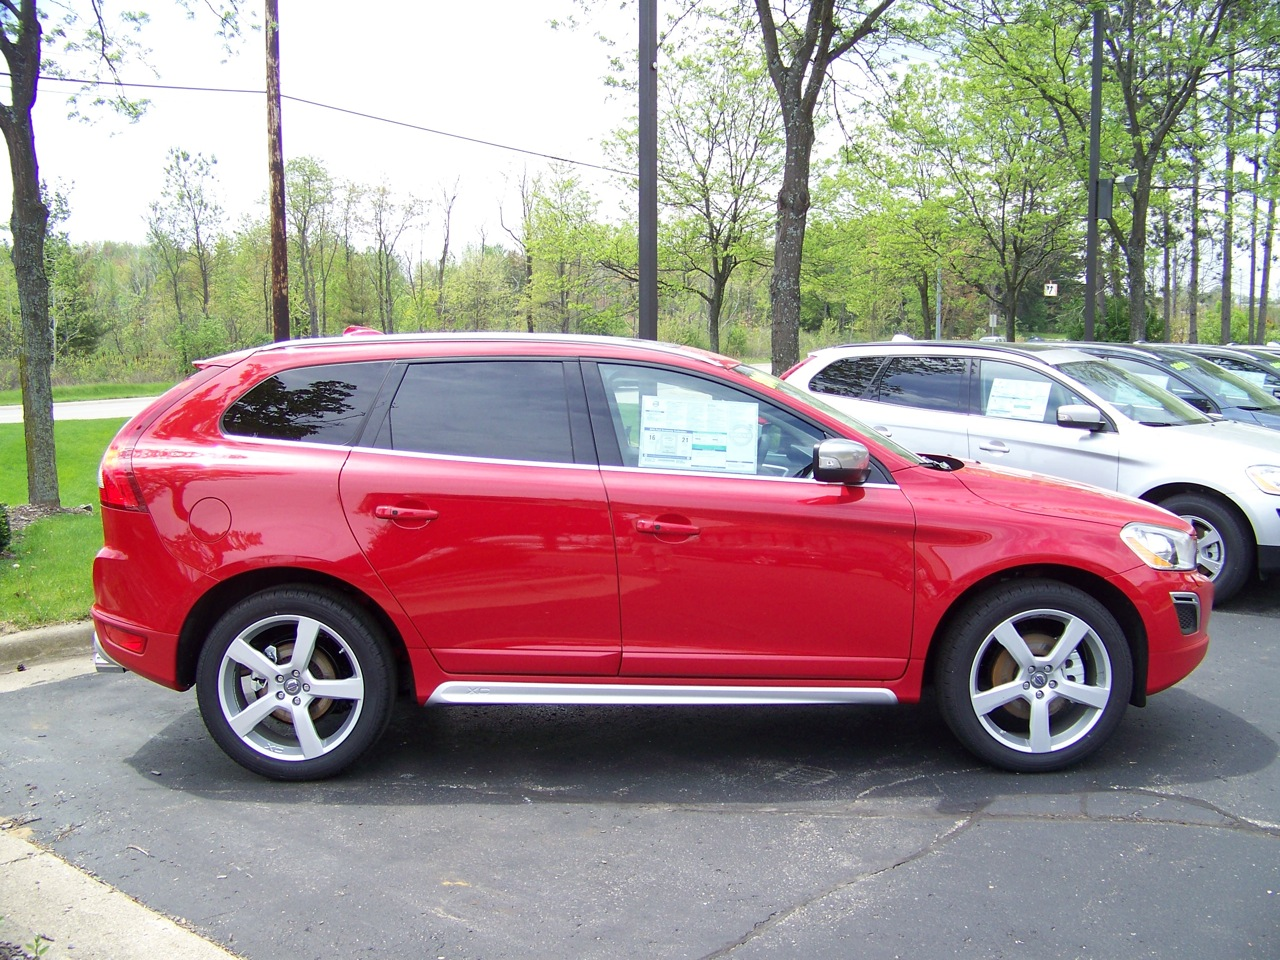 VOLVO XC 60 red